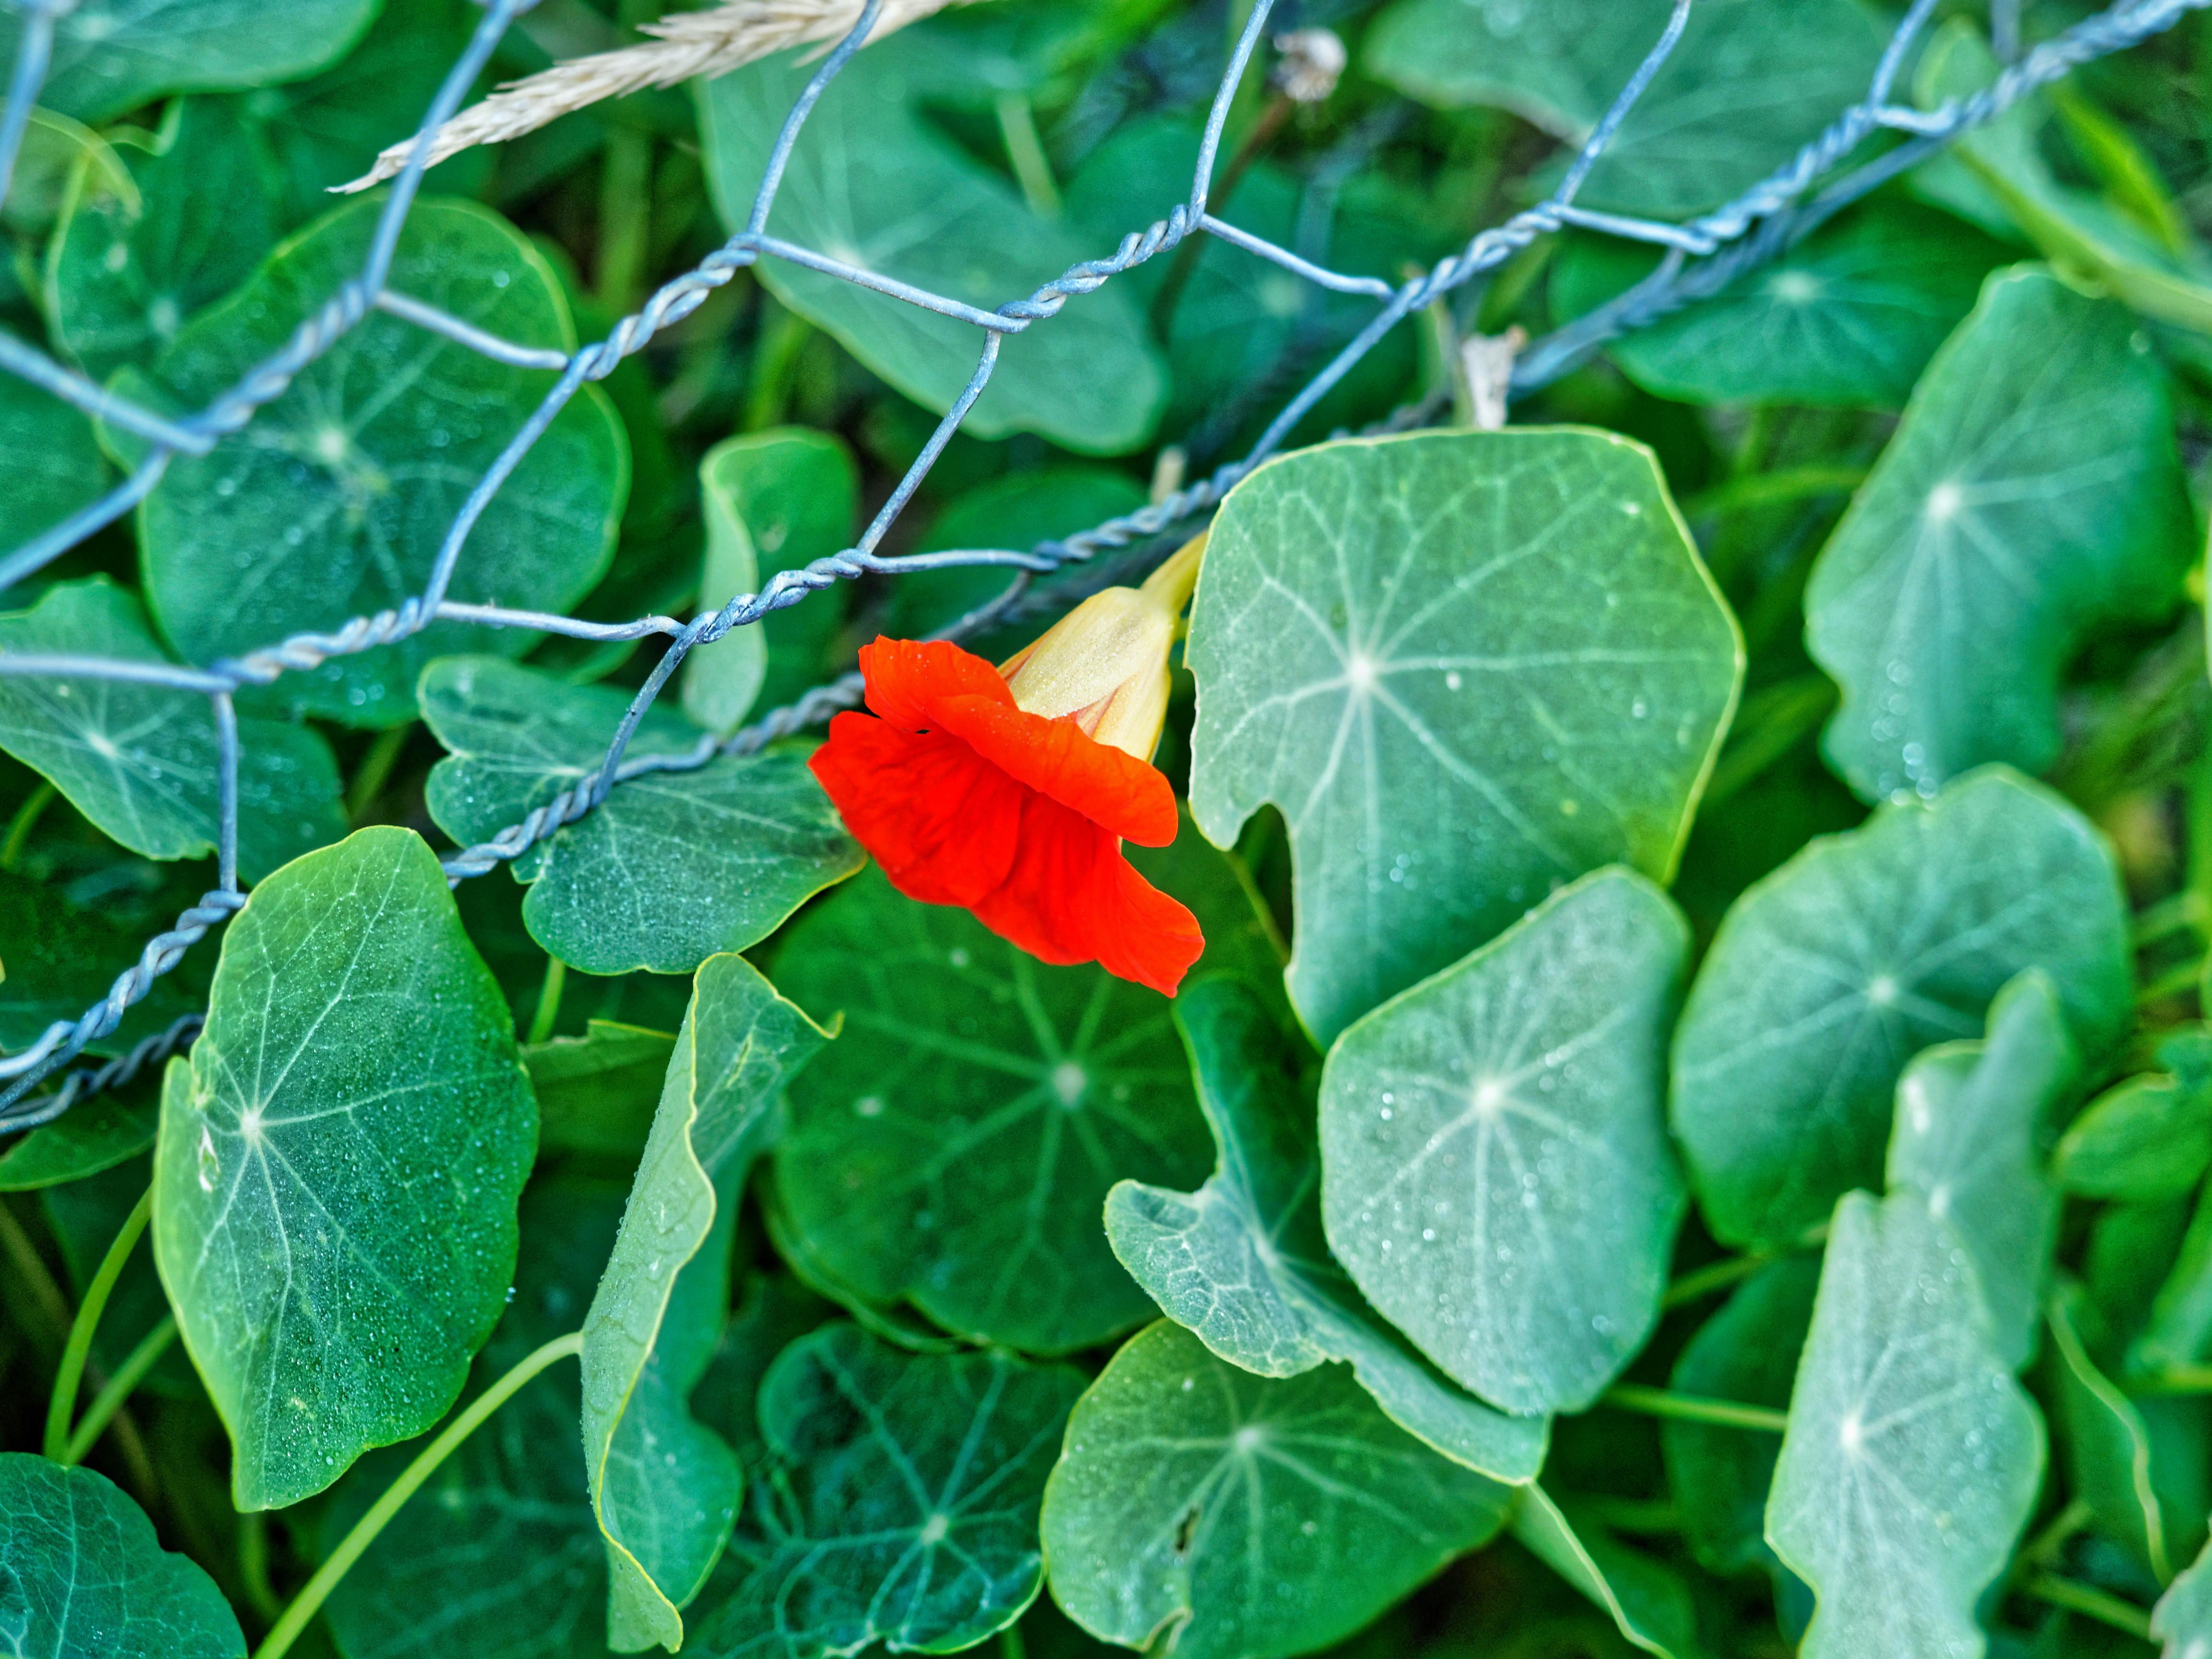 This should be Tropaeolum-2.jpeg.  Is it missing?